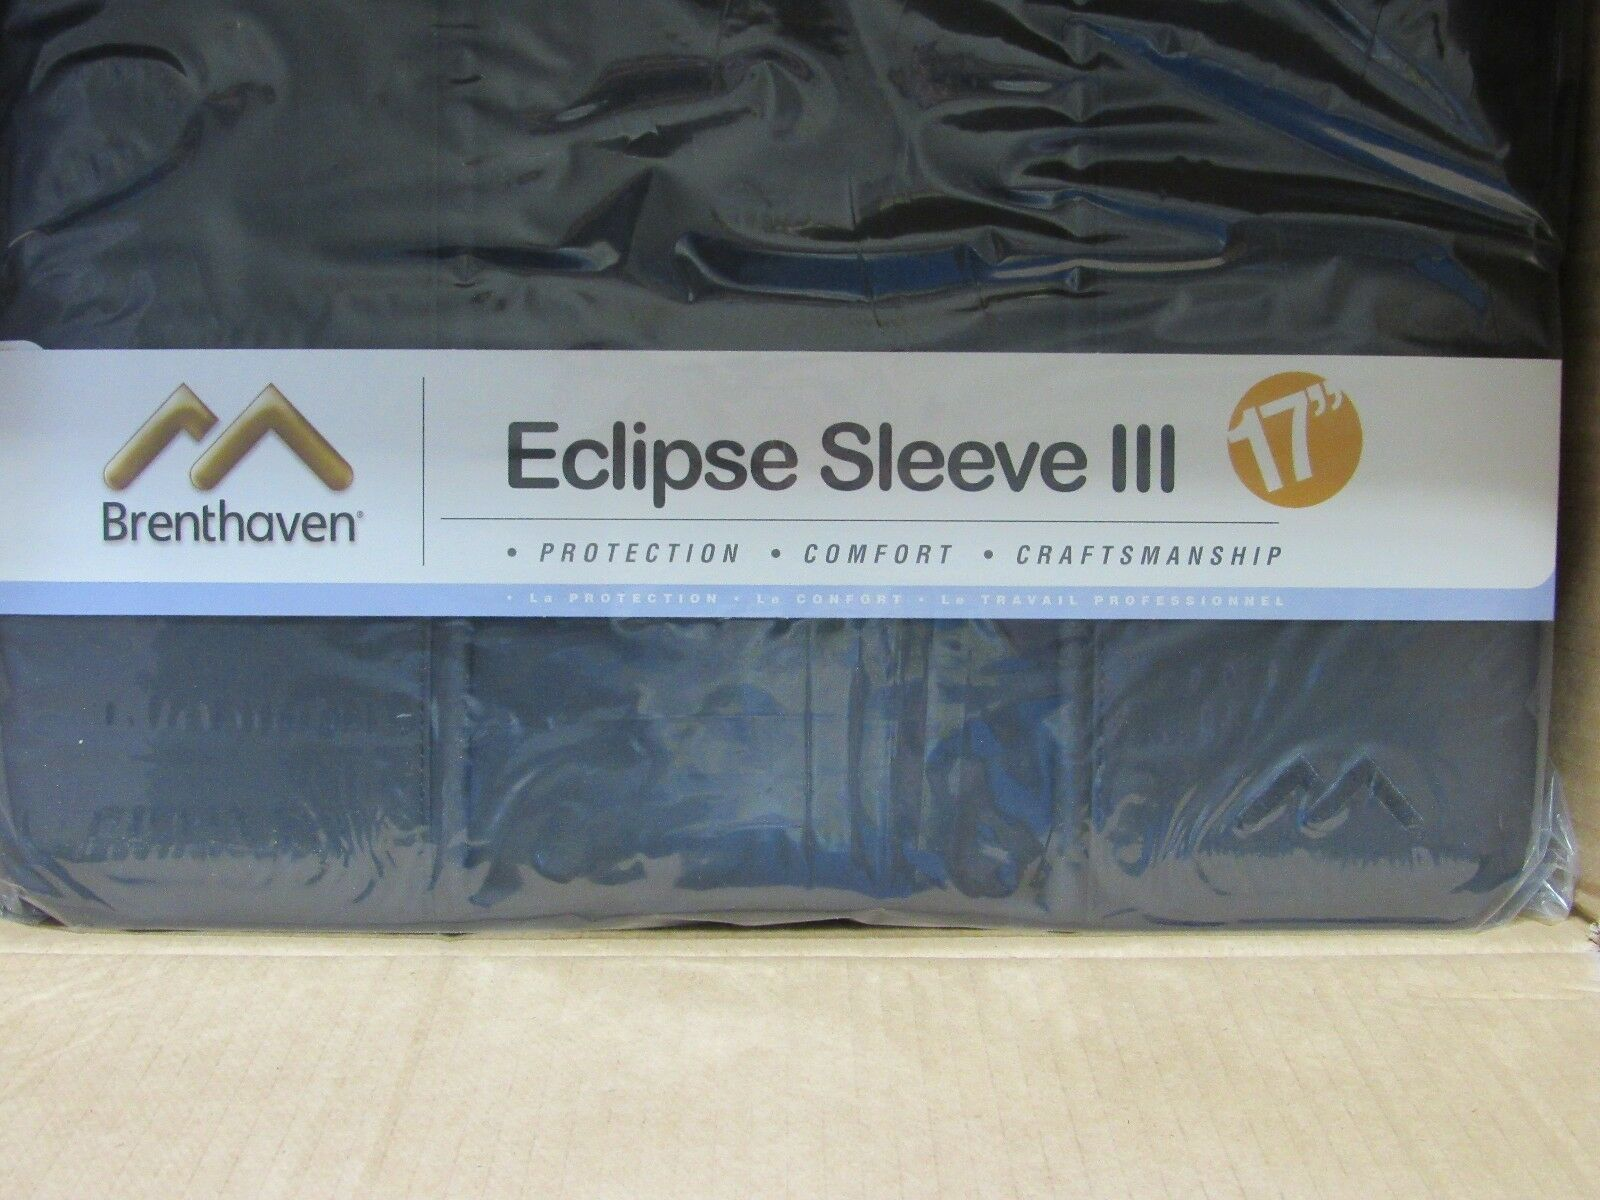 "Brenthaven Eclipse Sleeve III 17"" Laptop Lifetime Guarantee Craftsmanship"